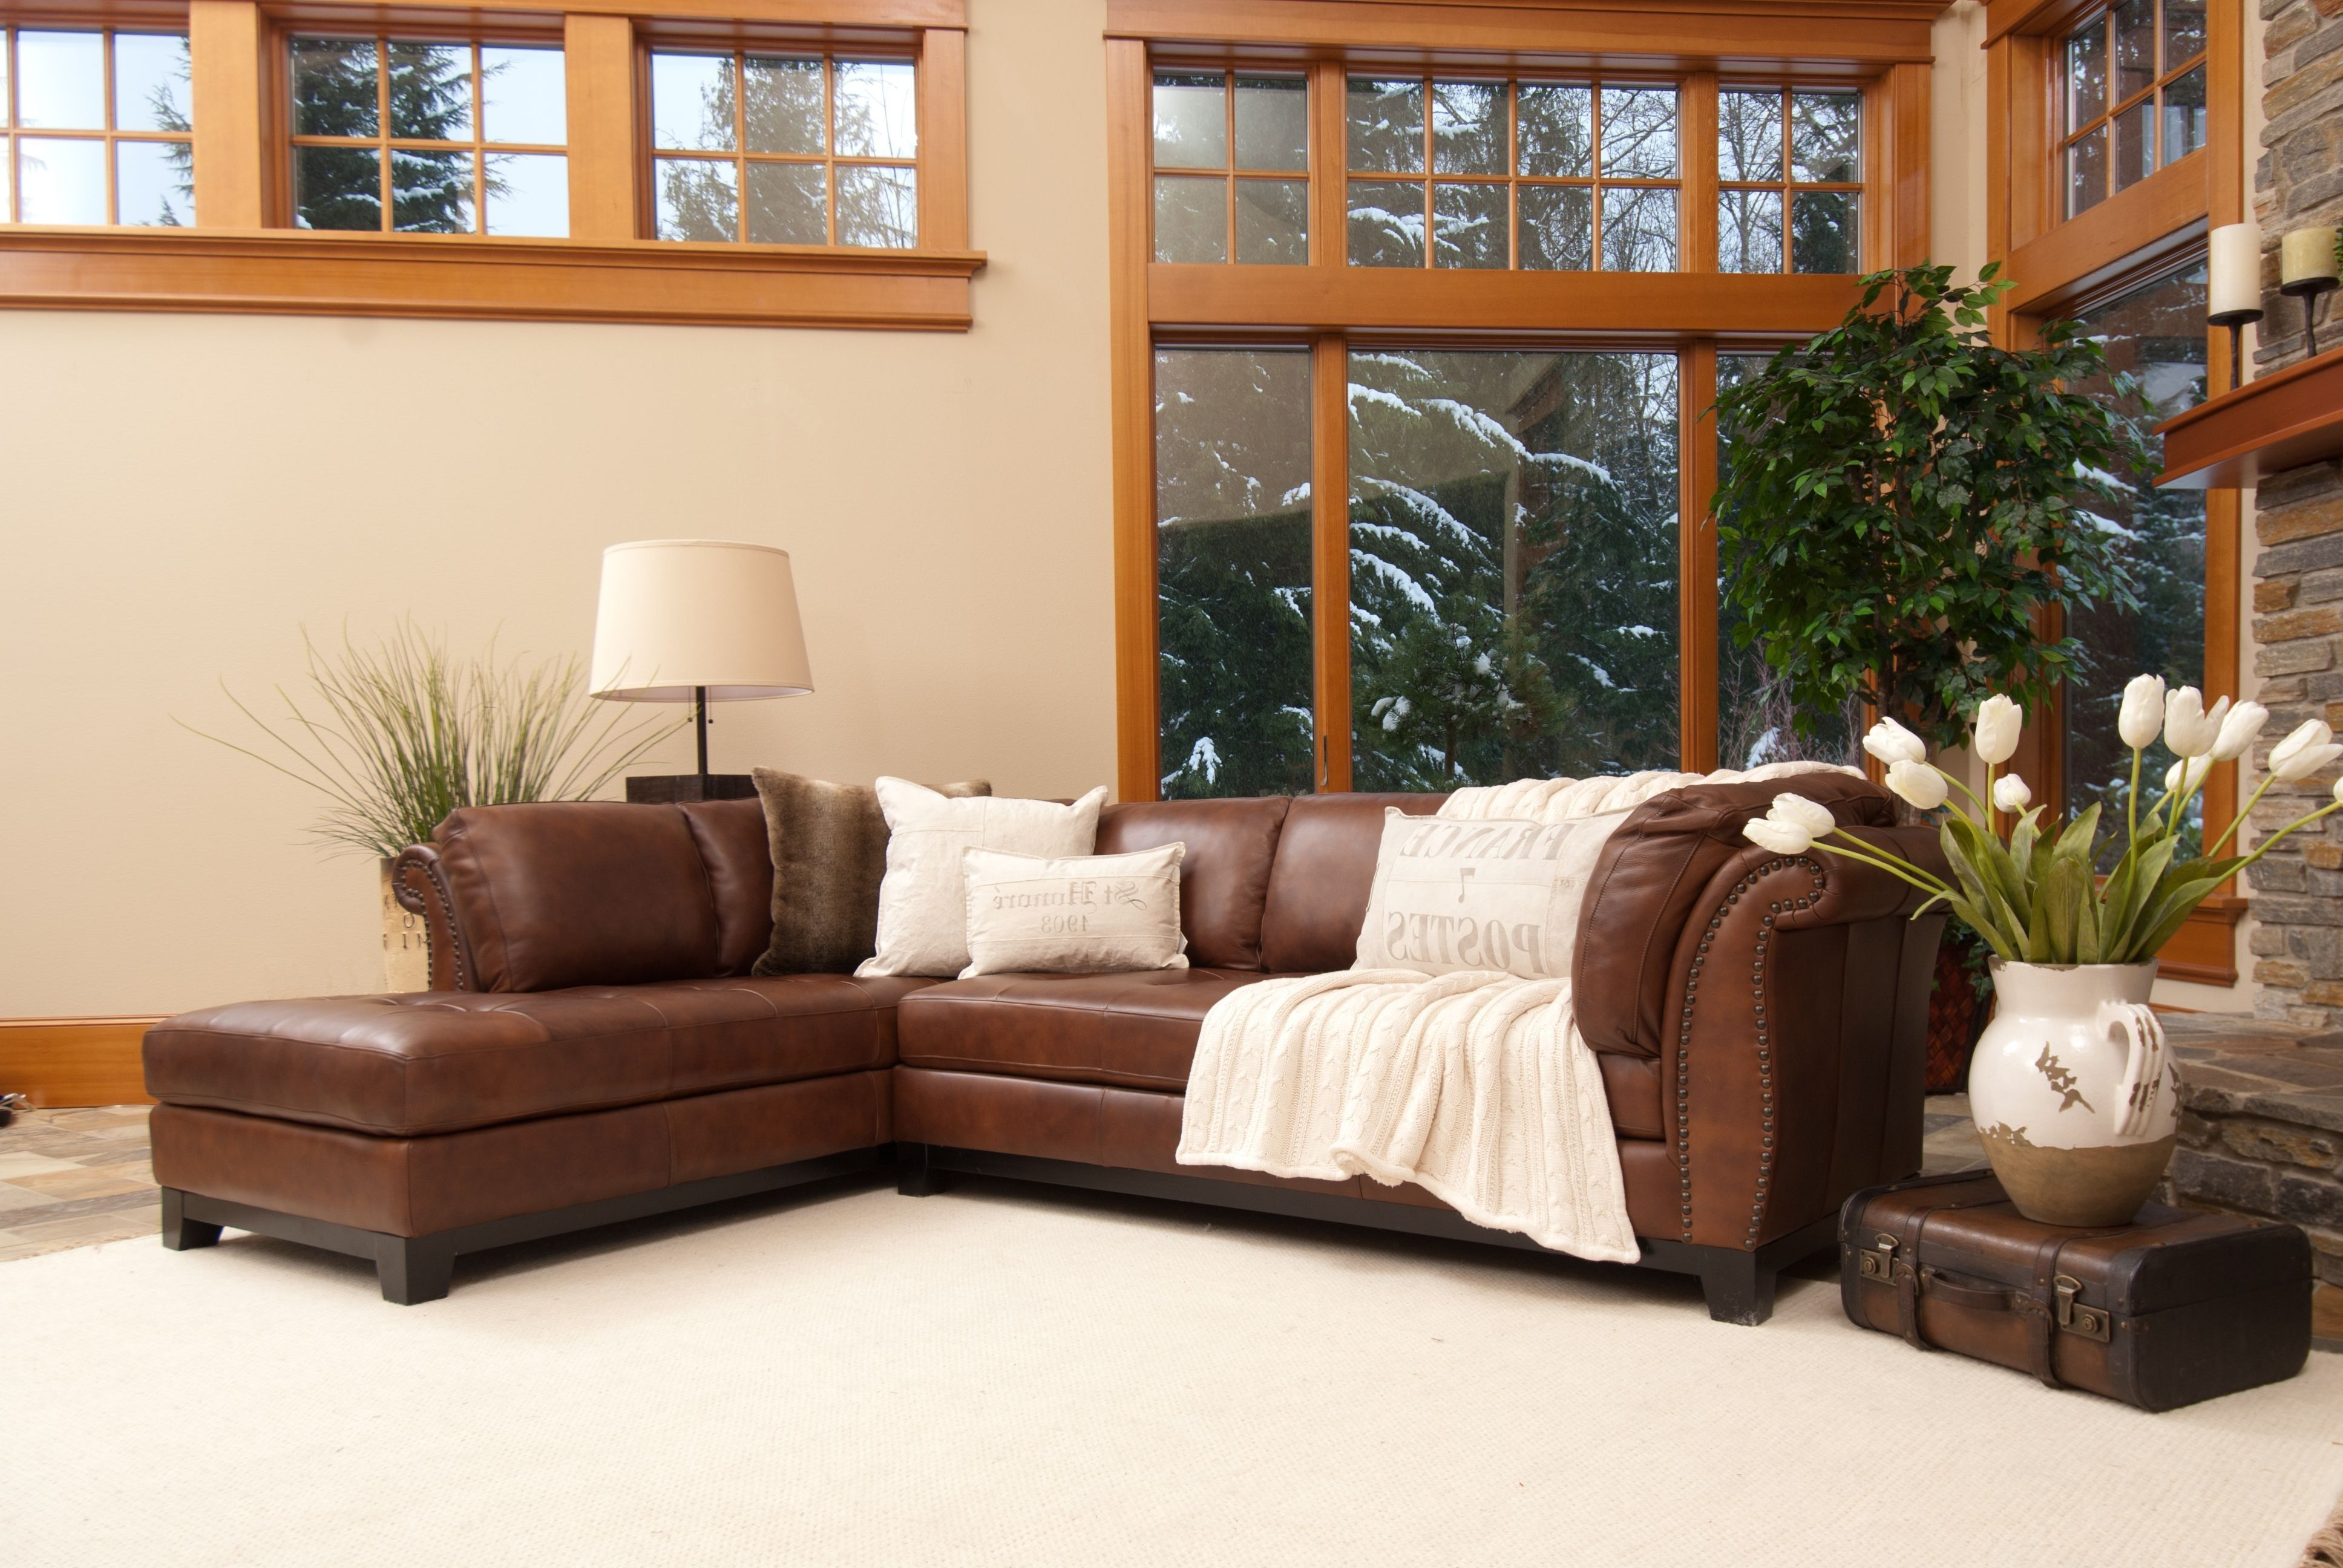 Corsario Bourbon Leather Sectional Sofa